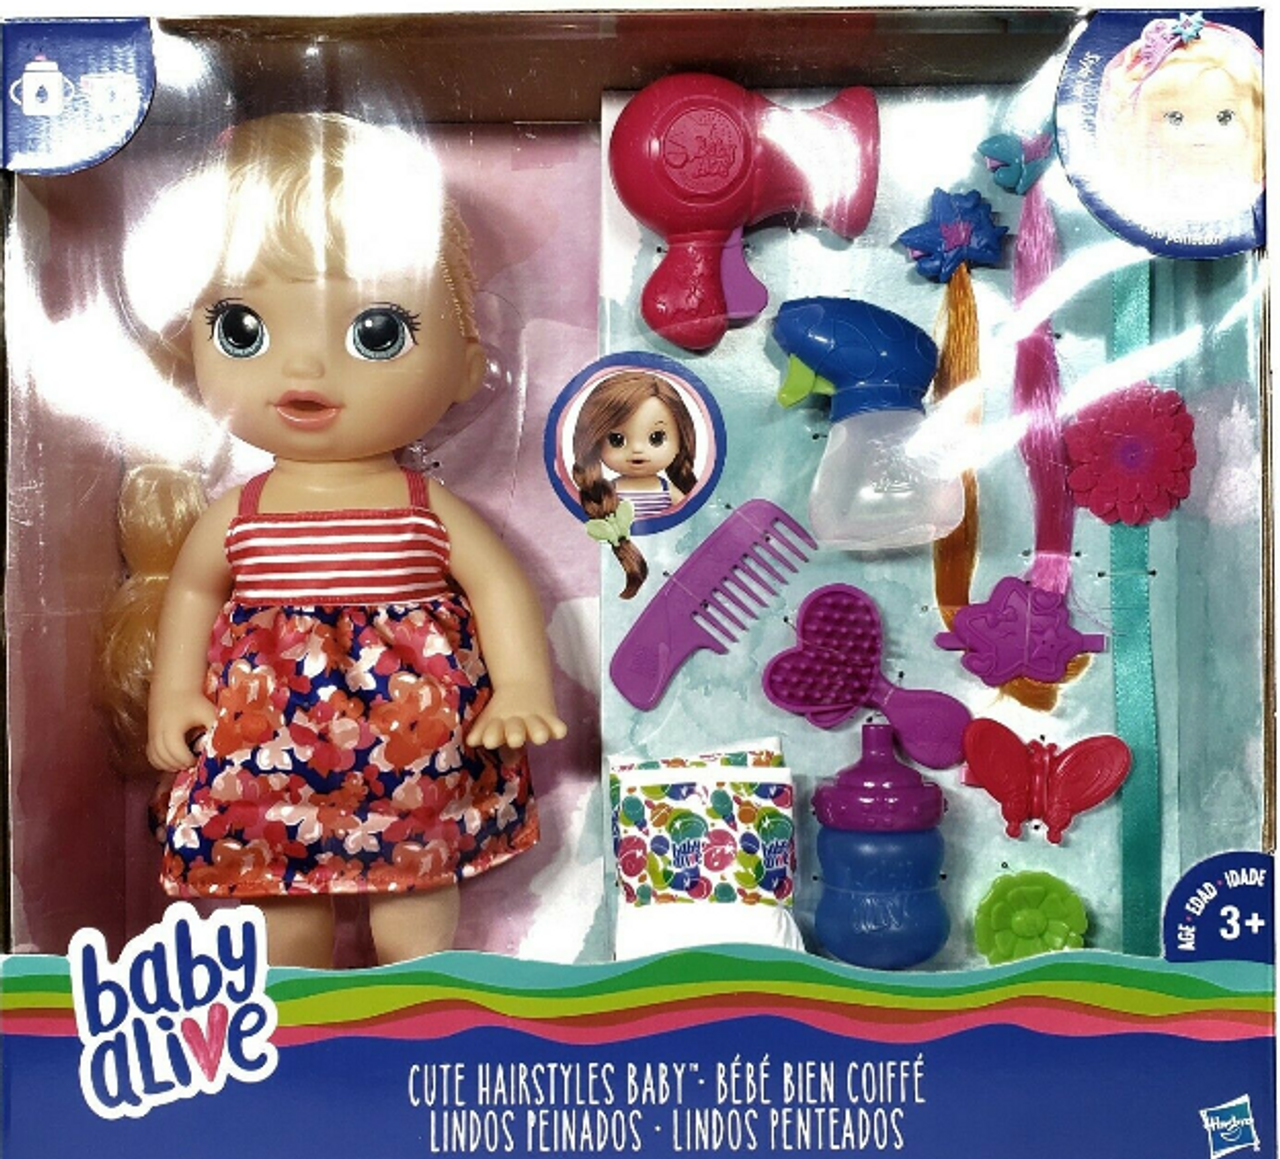 Baby Alive Cute Hairstyles Baby Doll She Drinks, Pees, Style Her ...